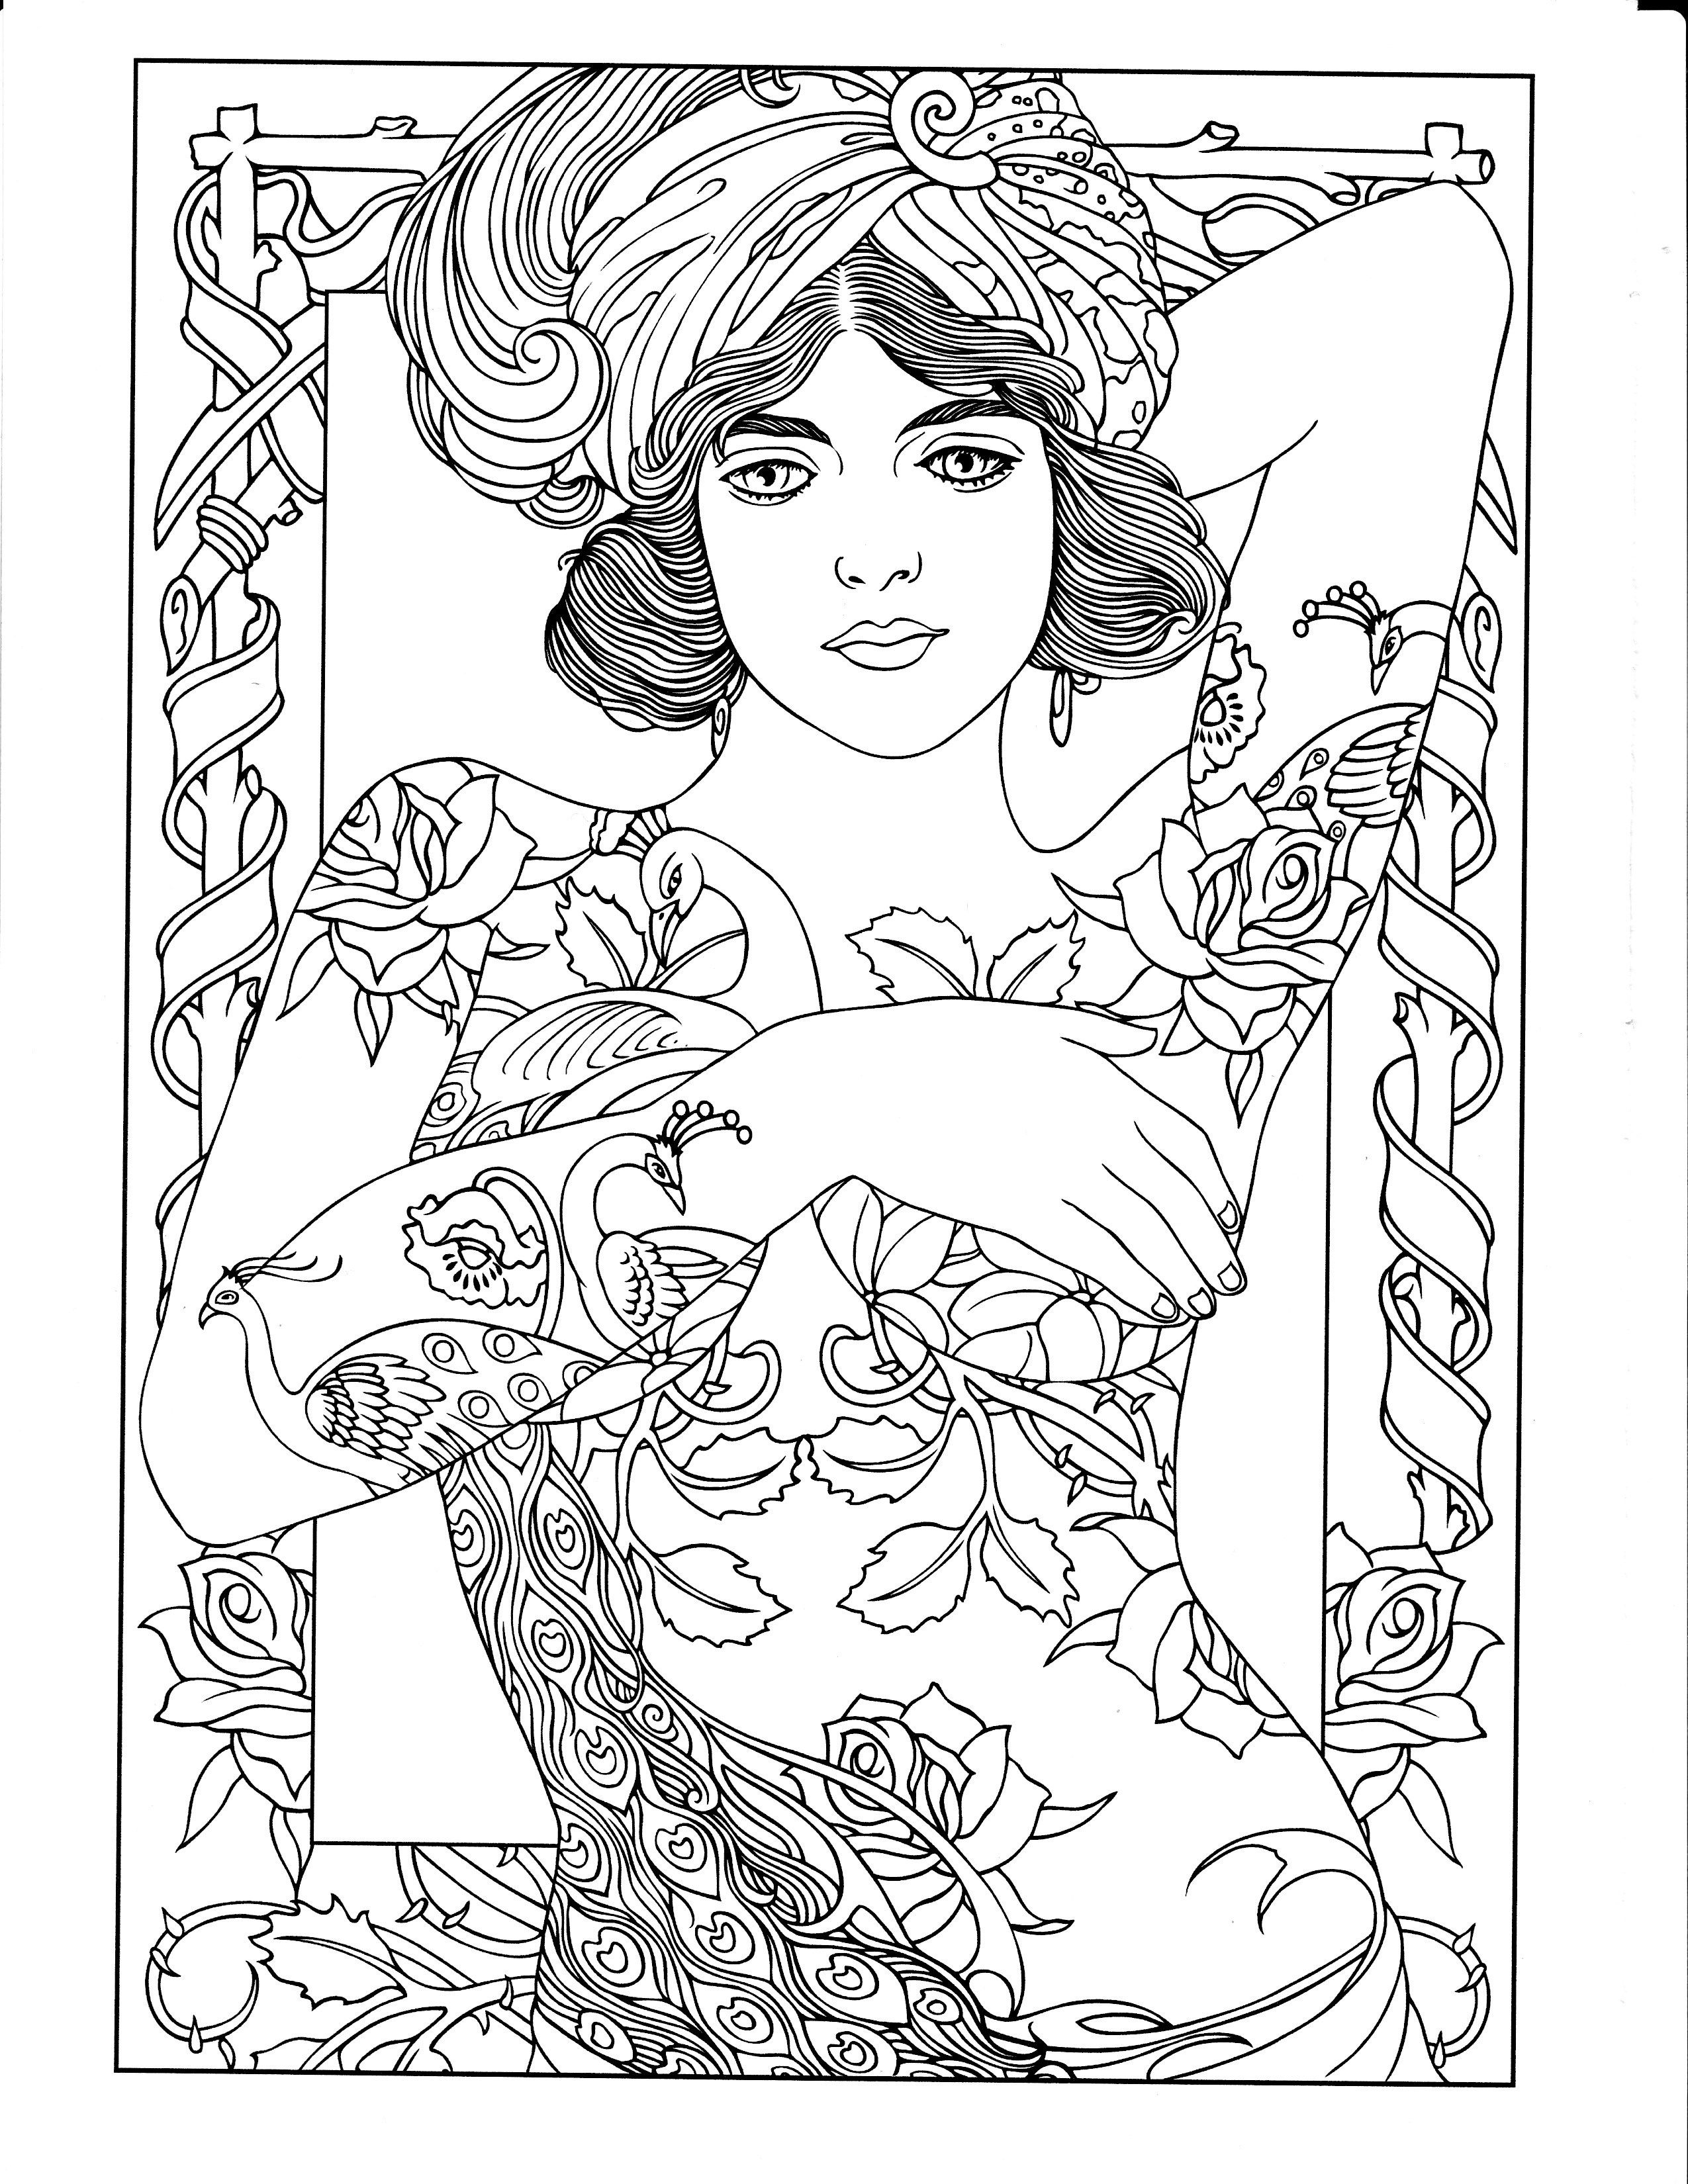 tattoo coloring pages printable woman tattoos tattoos adult coloring pages tattoo printable coloring pages